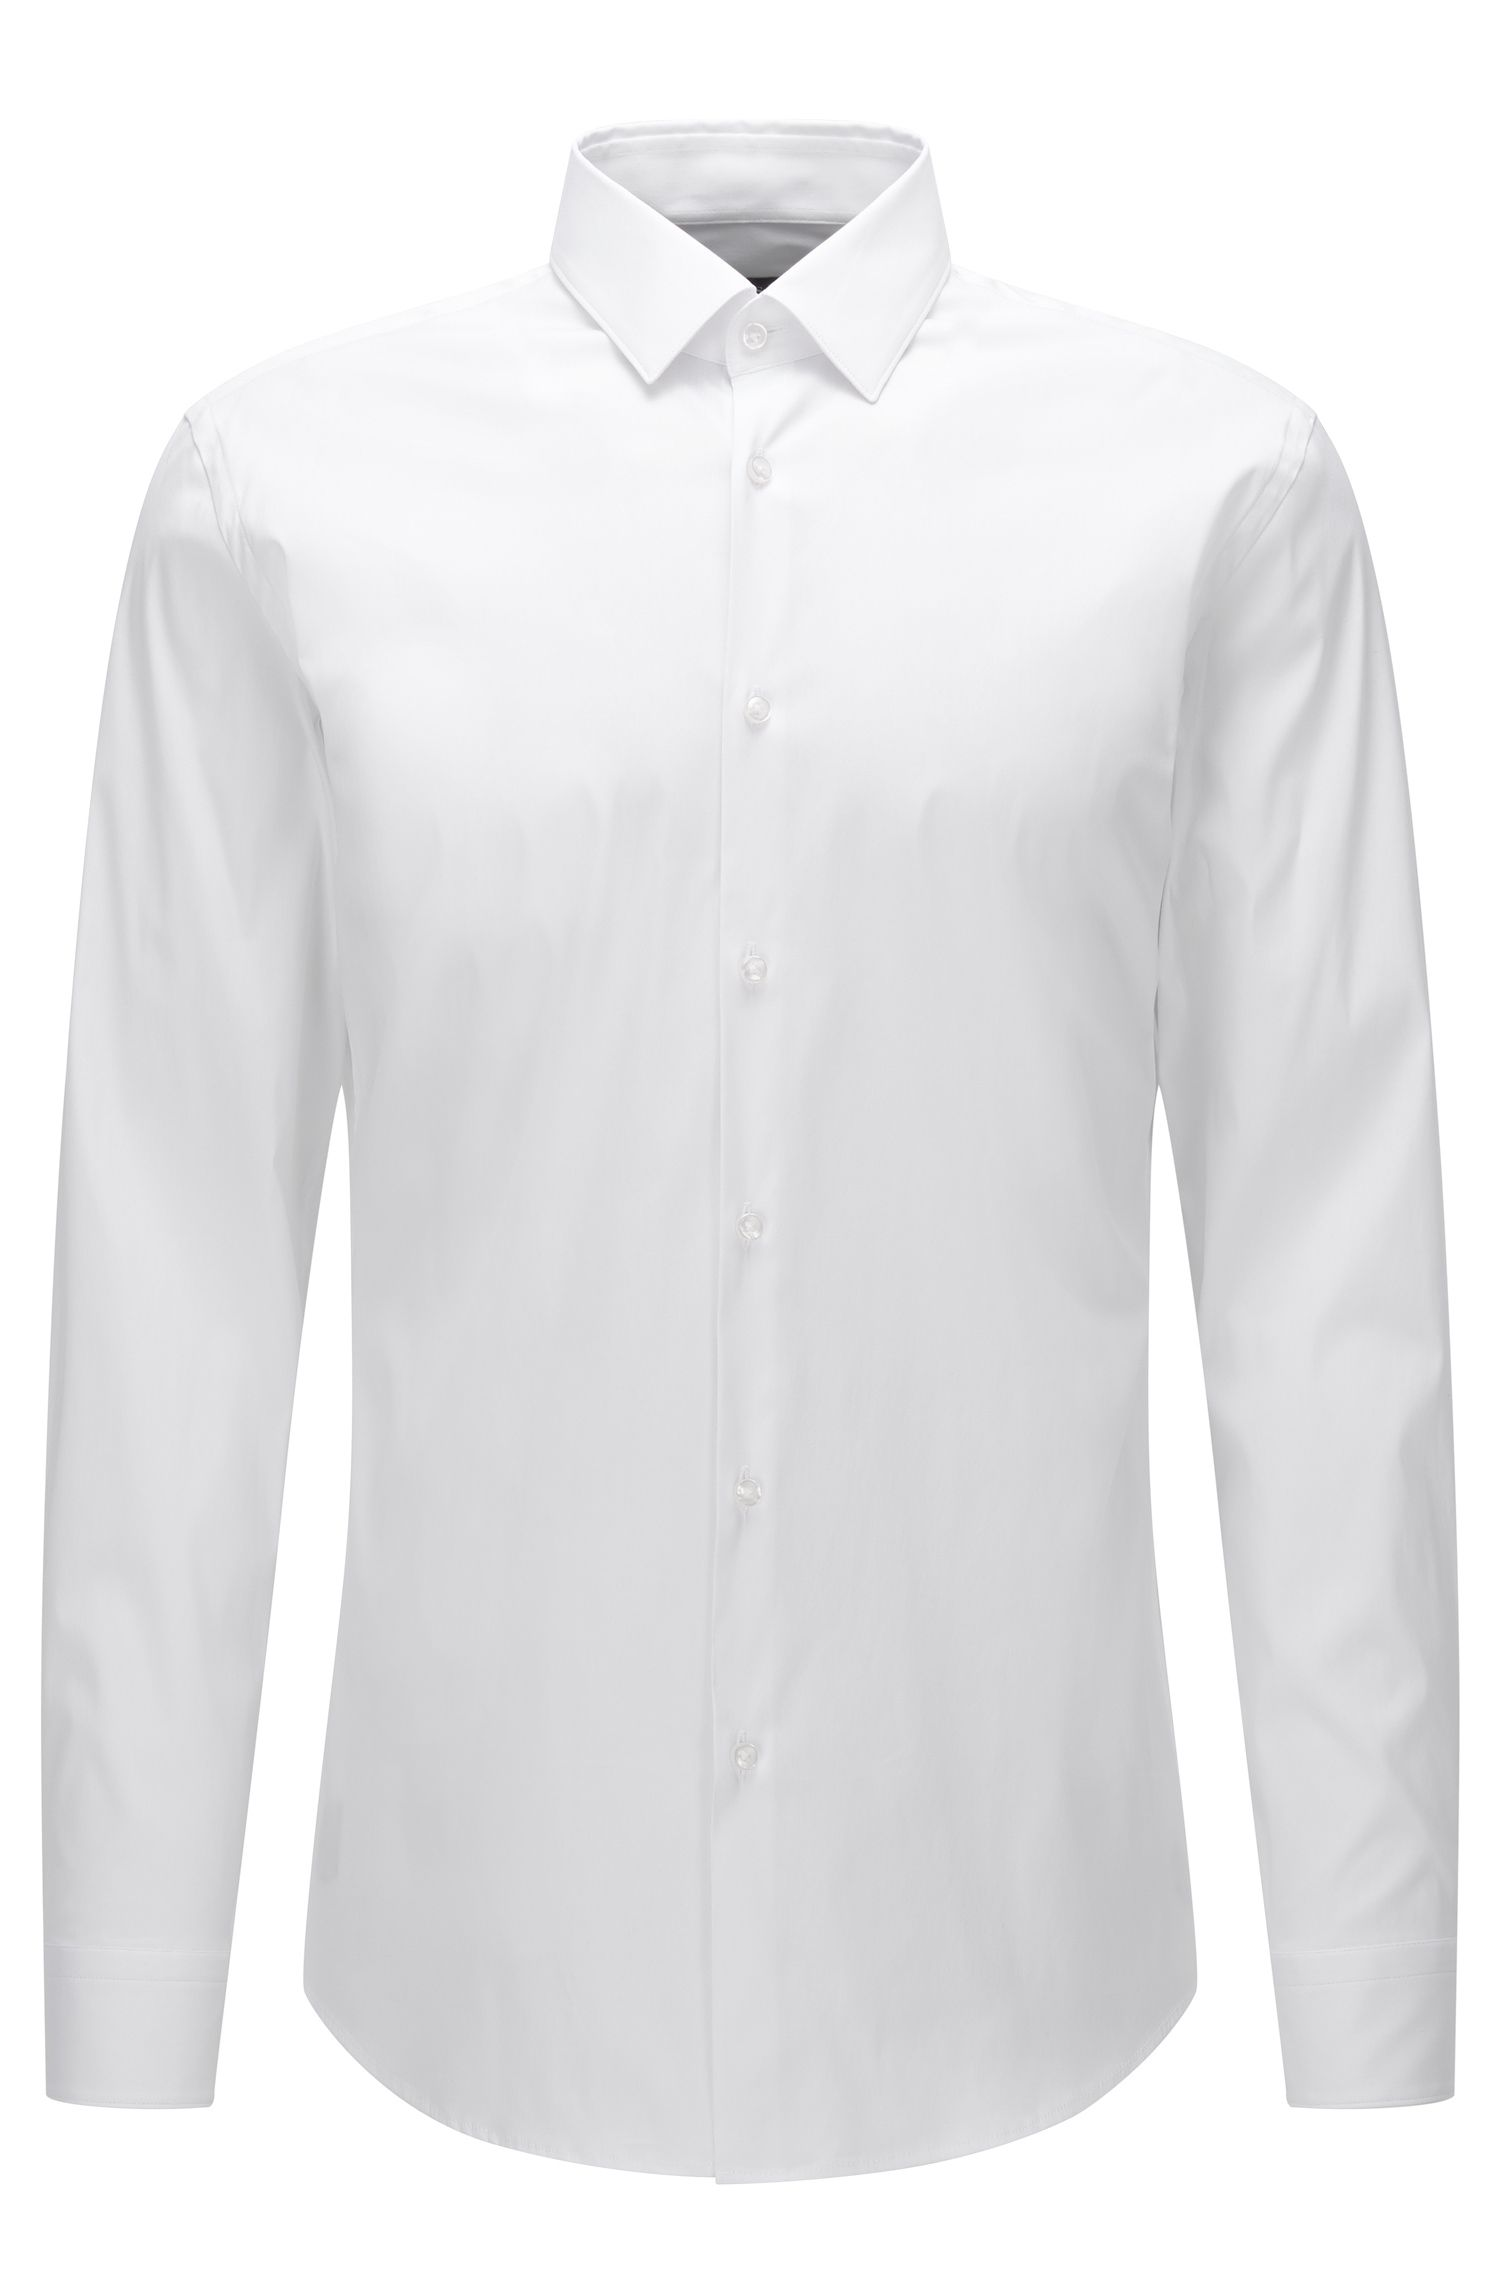 Slim-fit shirt in stretch cotton poplin